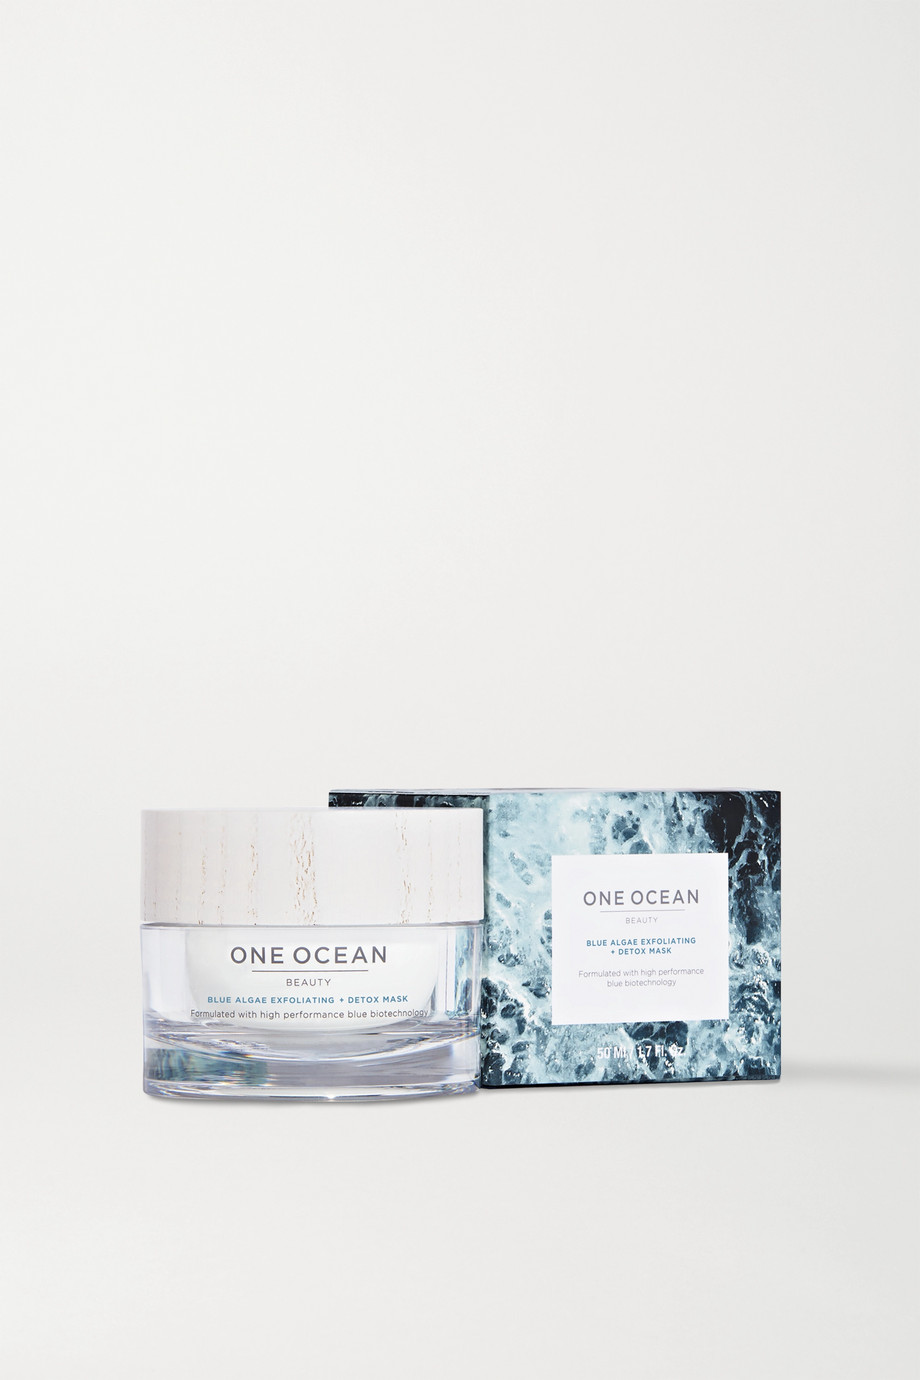 One Ocean Beauty Blue Algae Exfoliating + Detox Mask, 50 ml – Gesichtsmaske